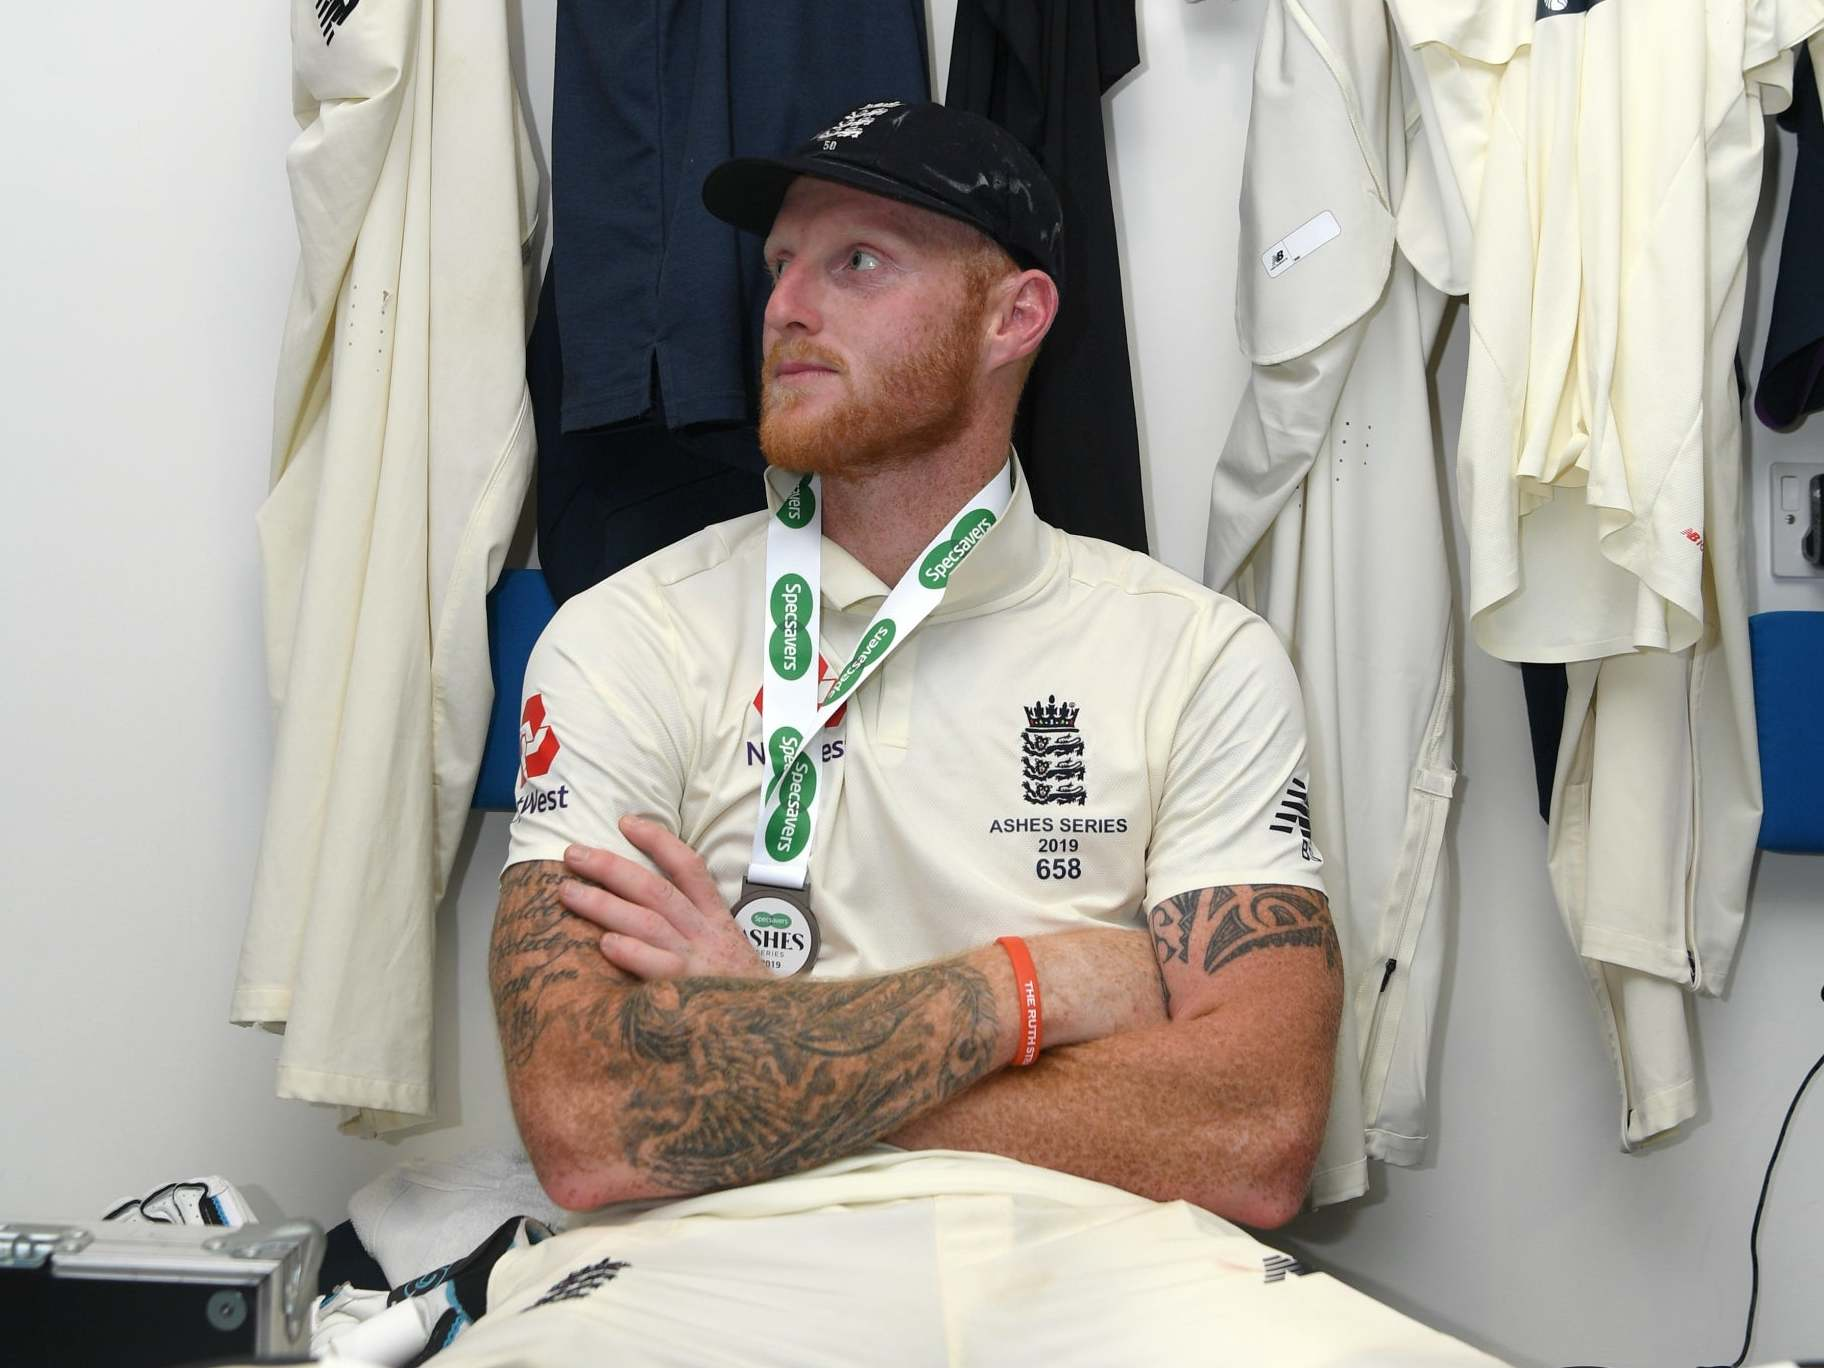 Ben Stokes condemns The Sun over 'despicable, immoral and heartless' story about his family tragedy